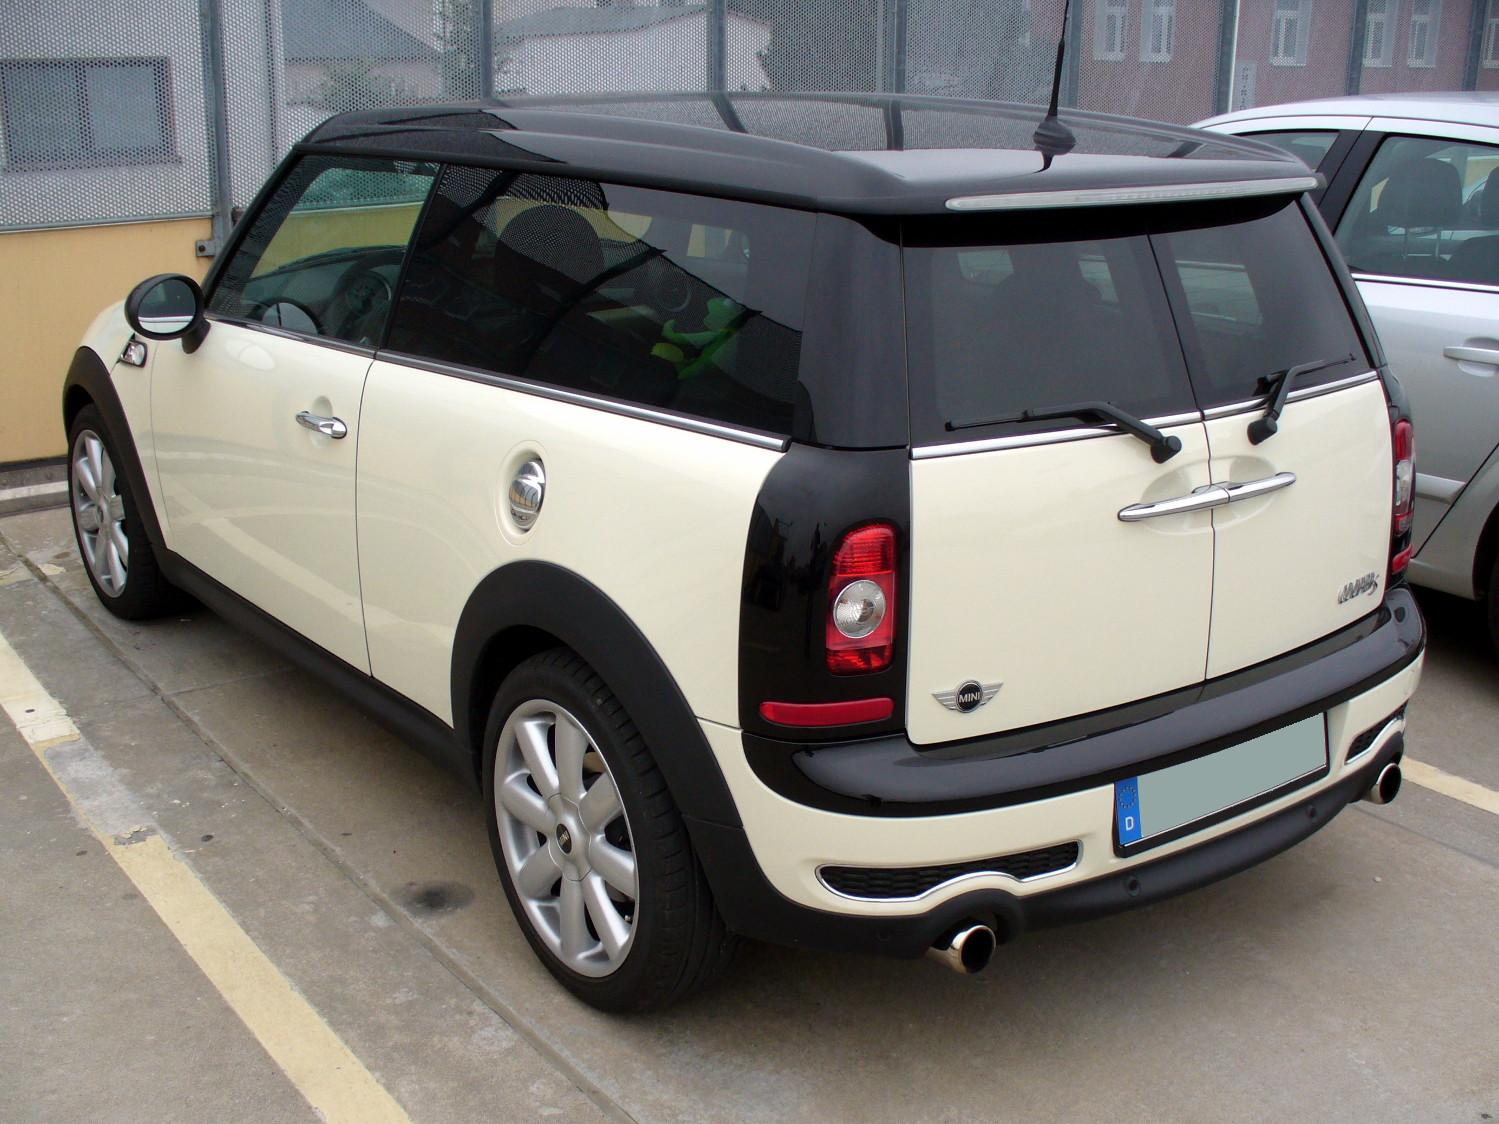 datei mini cooper s clubman pepperwhite heck jpg wikipedia. Black Bedroom Furniture Sets. Home Design Ideas